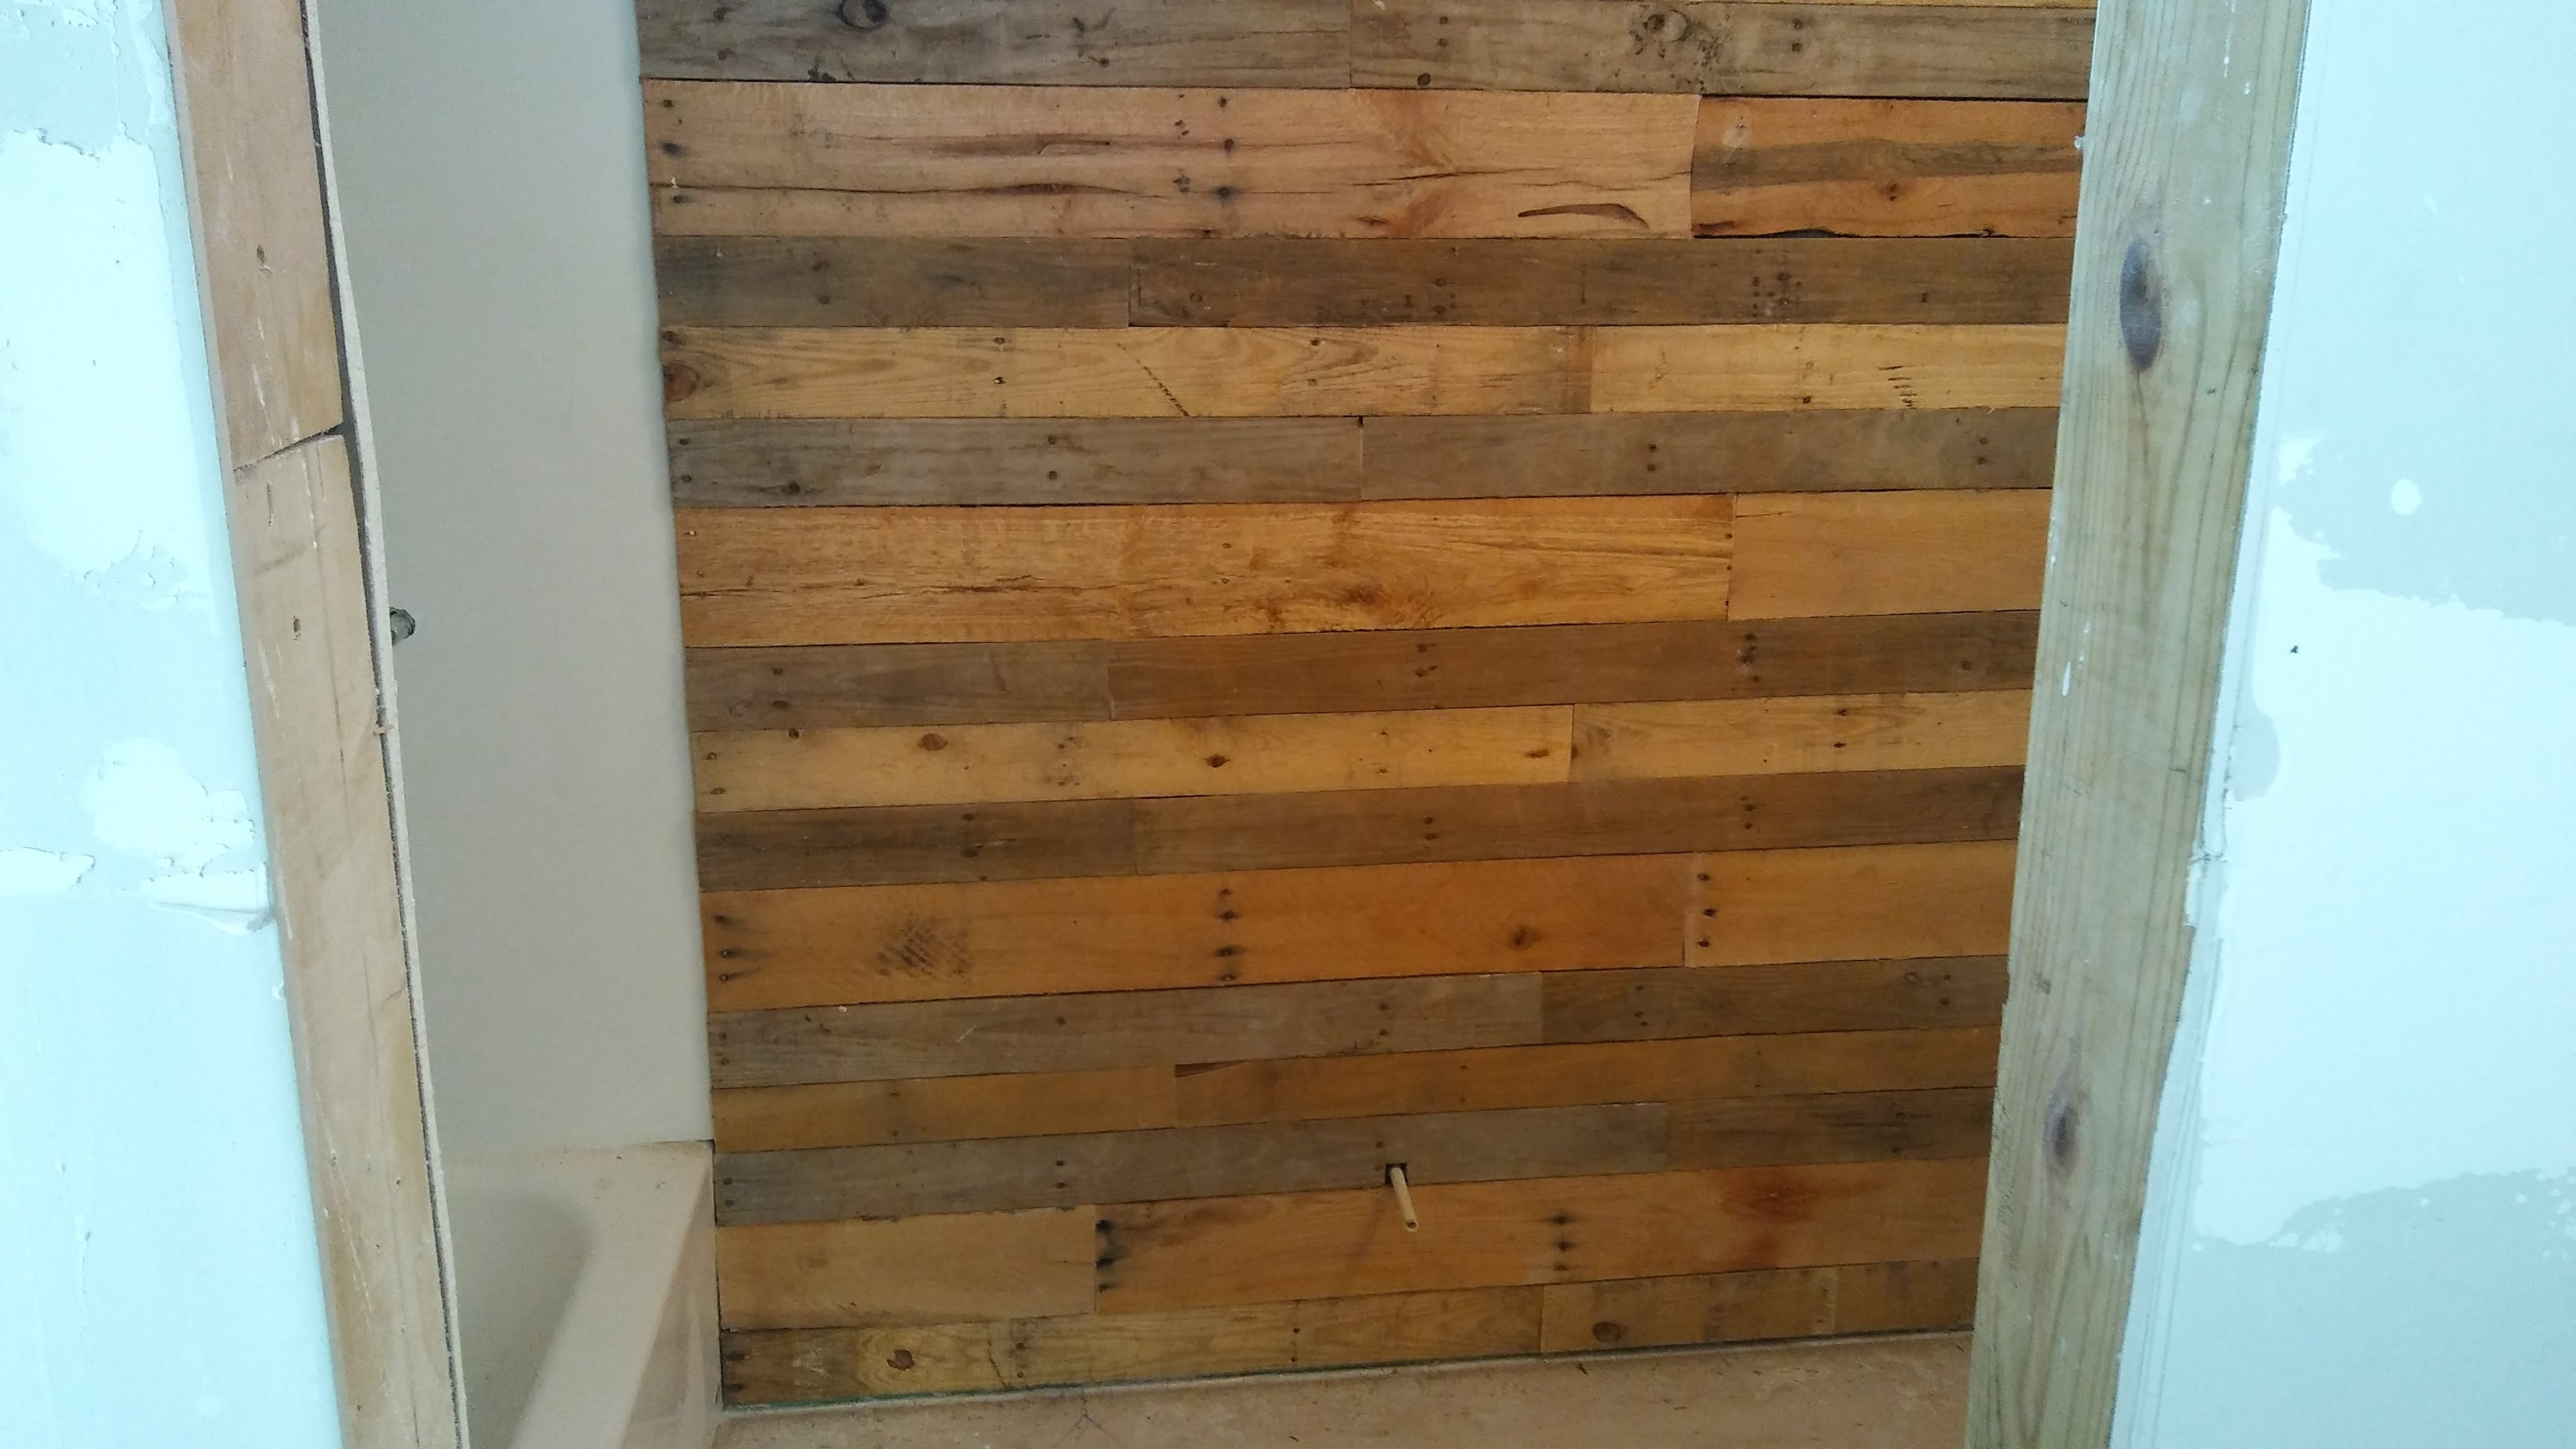 Latest How To Pallet Wood Accent Wall – Youtube With Regard To Wood Pallets Wall Accents (View 4 of 15)